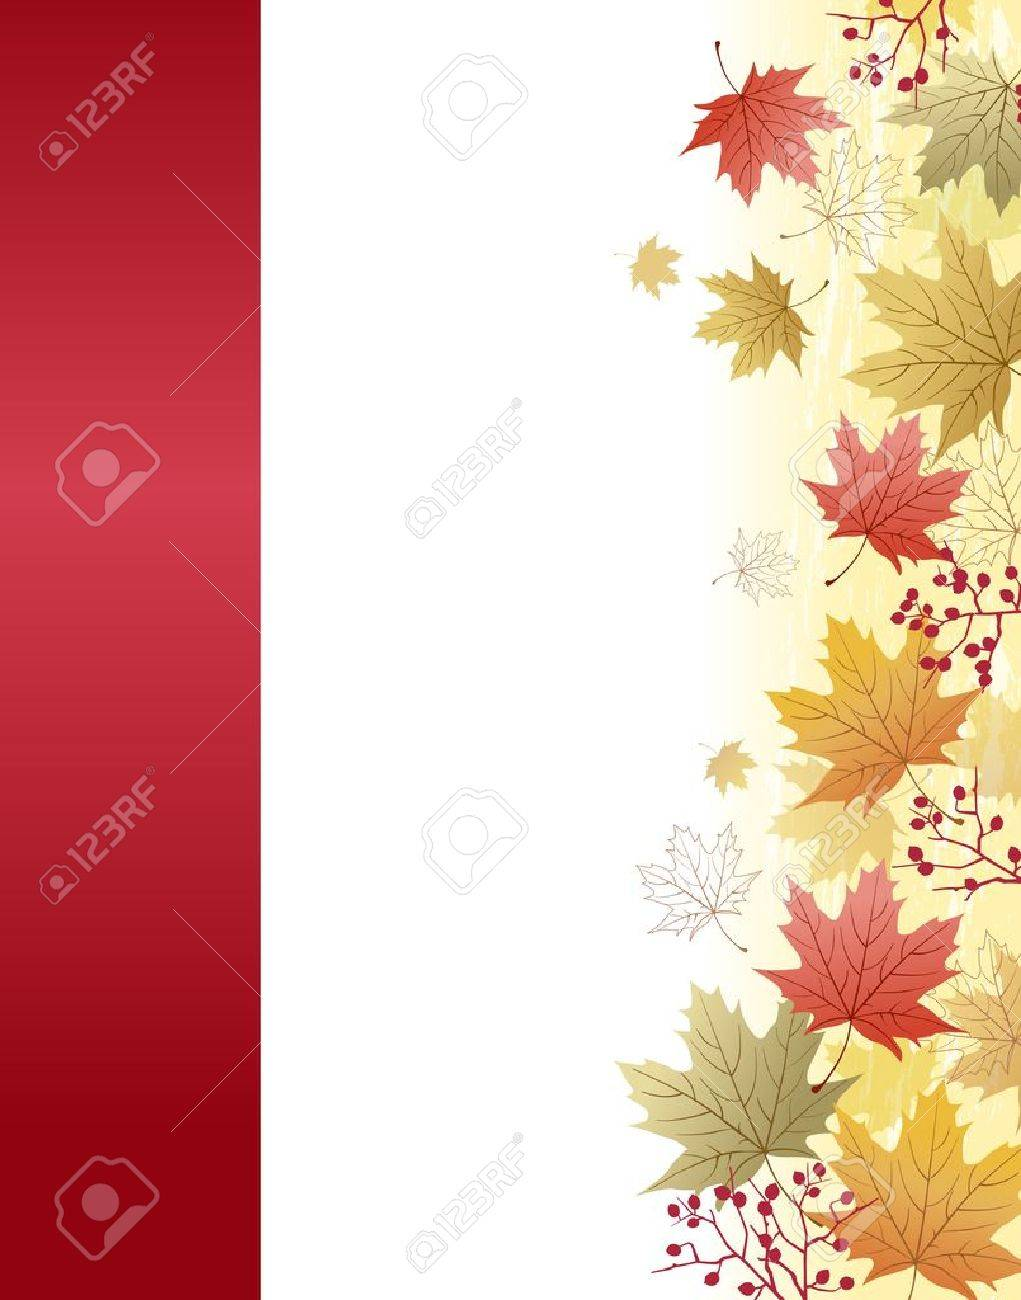 Autumn Maple leaves background with red ribbon bar.File contains Clipping  mask with un-